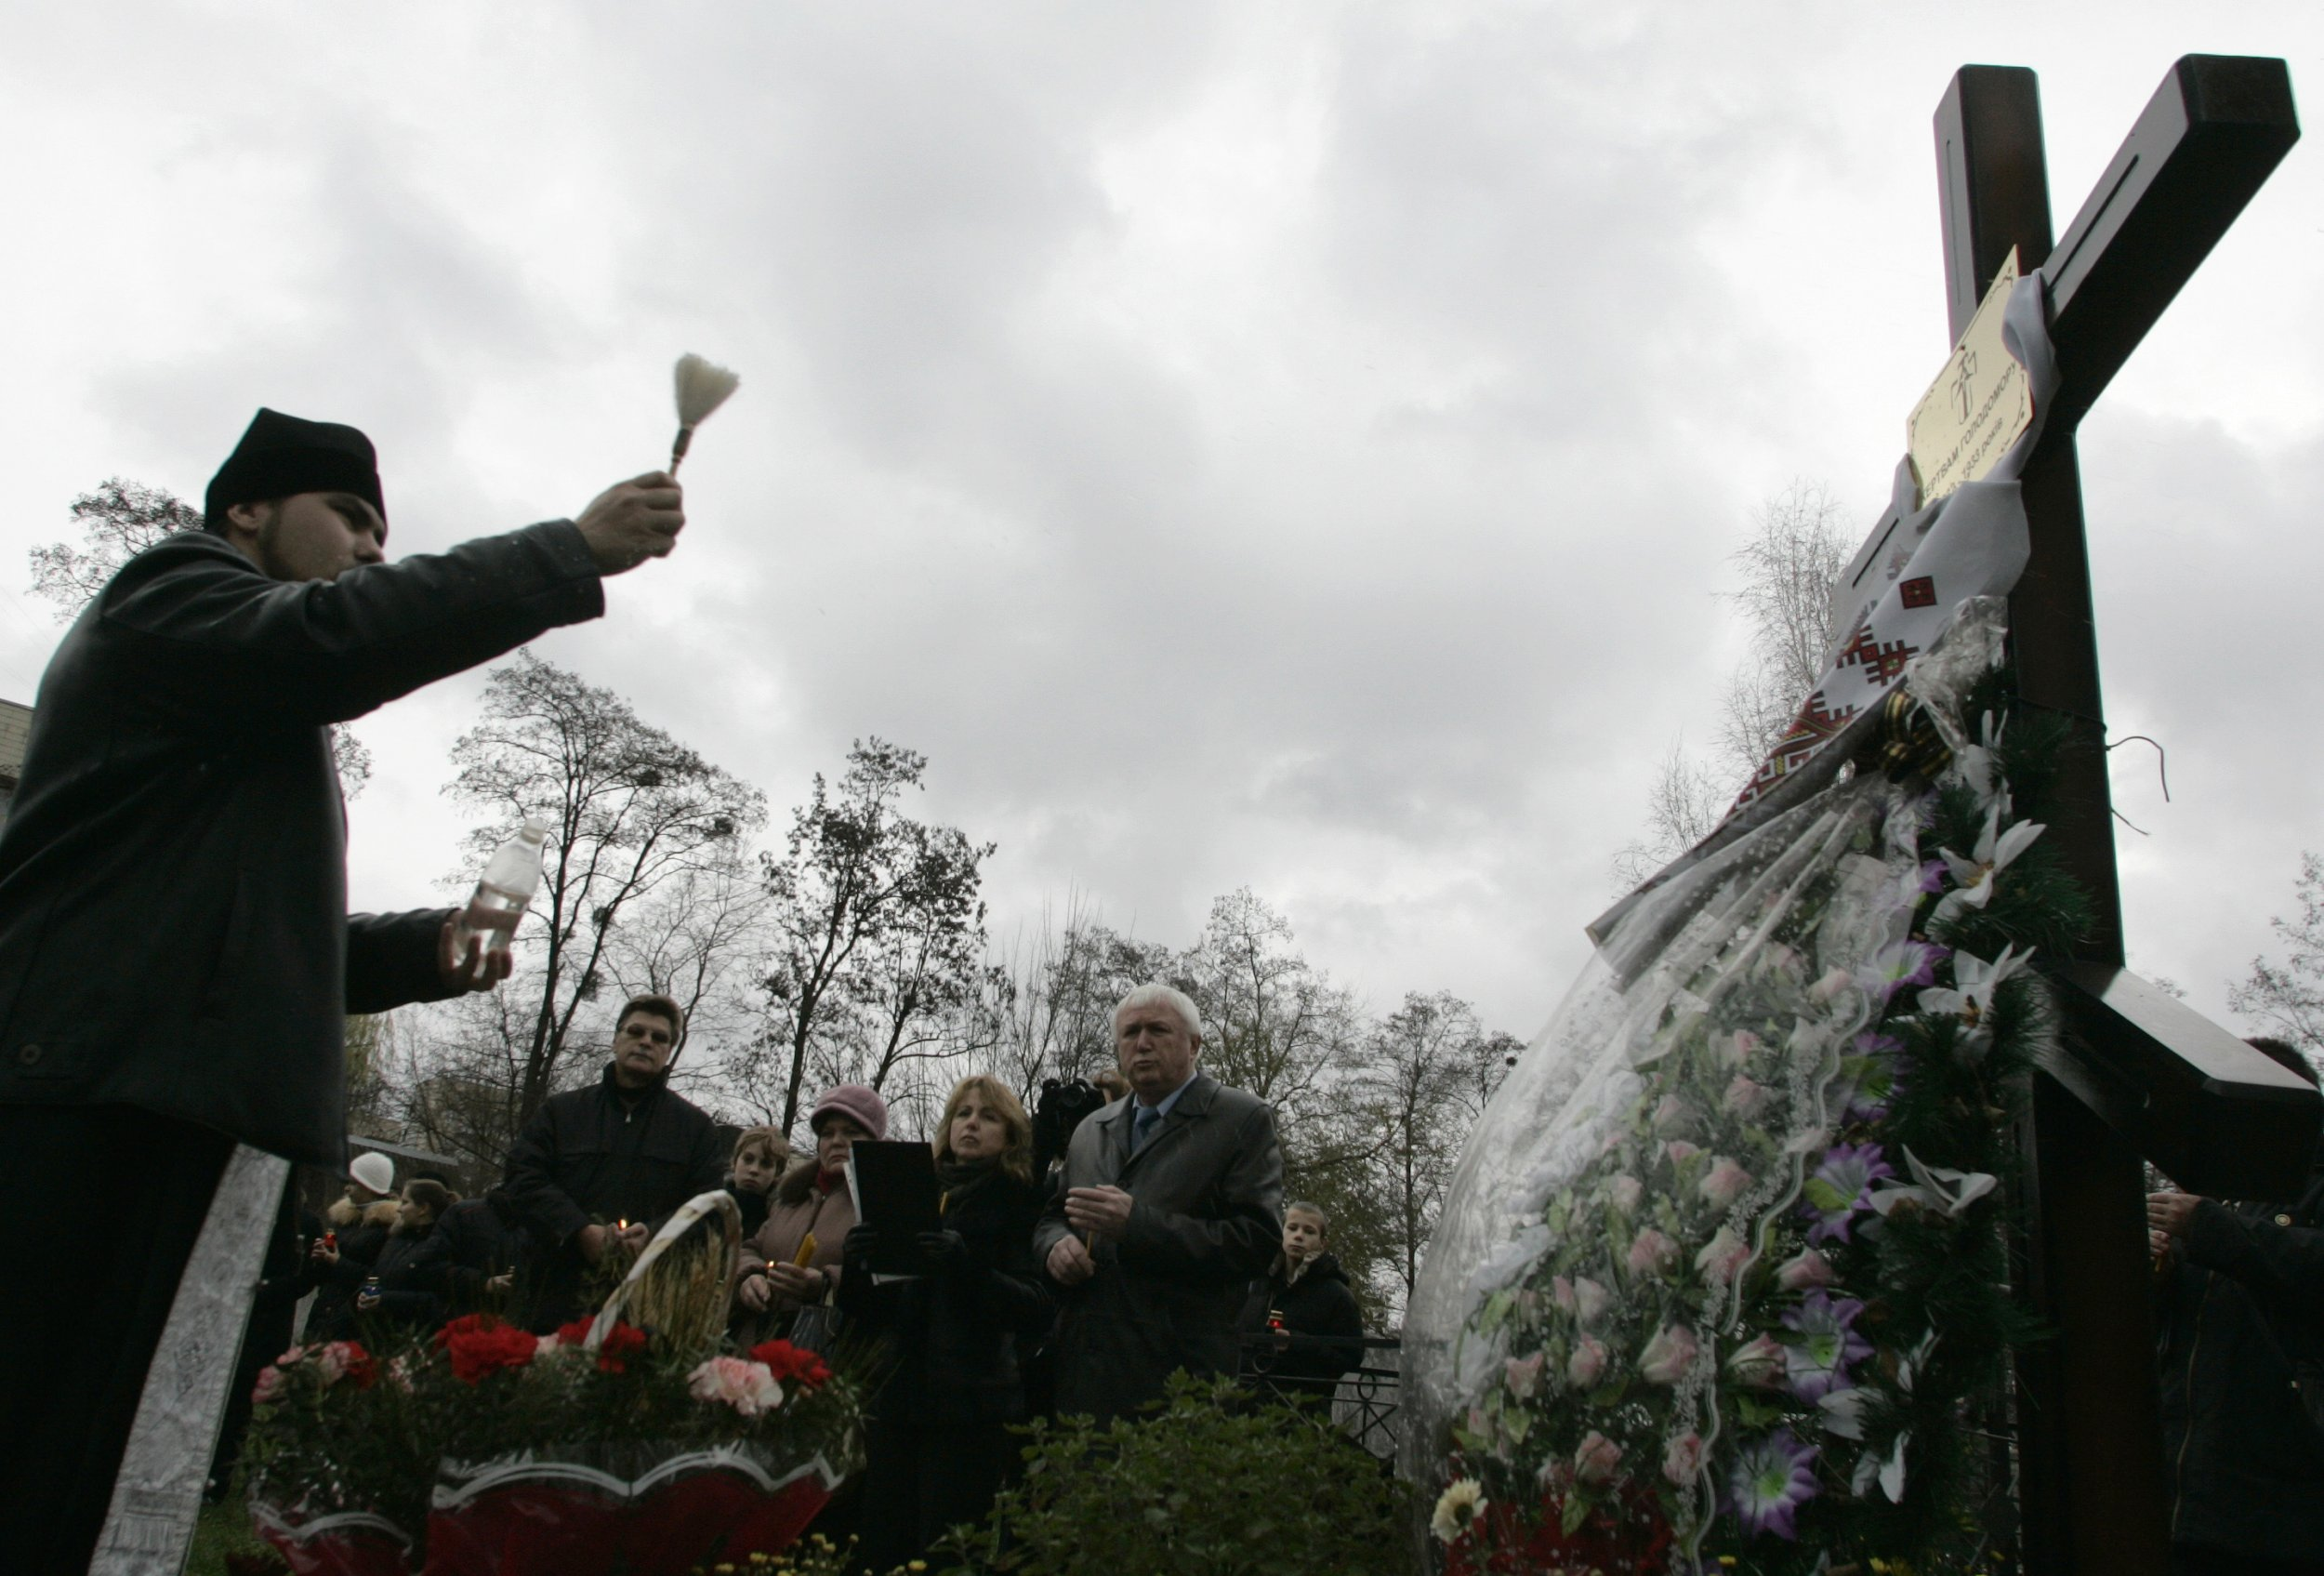 The United States officially recognized the Holodomor as genocide